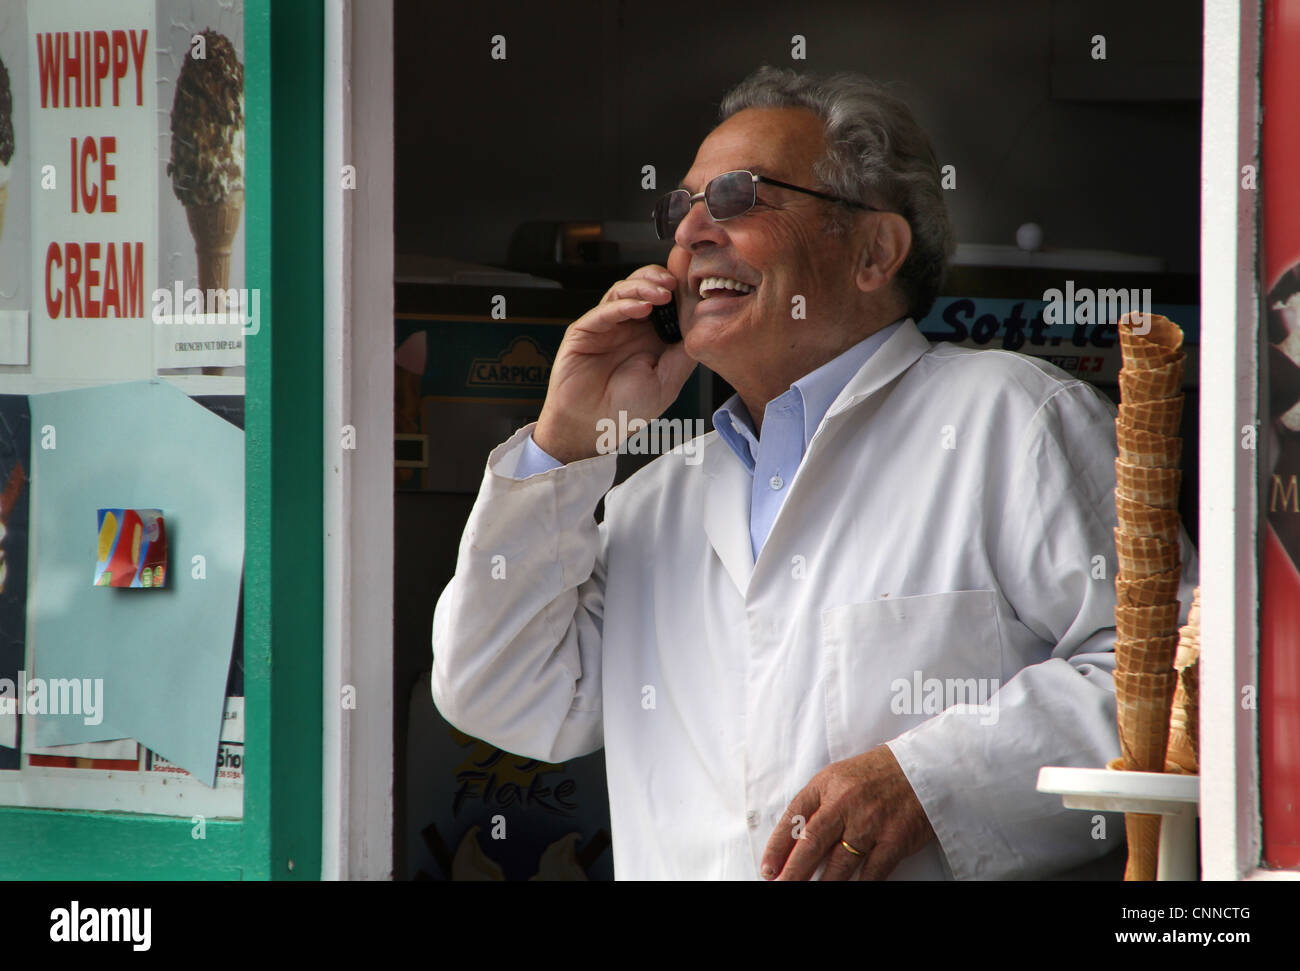 a0537cc98a8 Man in ice cream shop using mobile phone Stock Photo  47799600 - Alamy